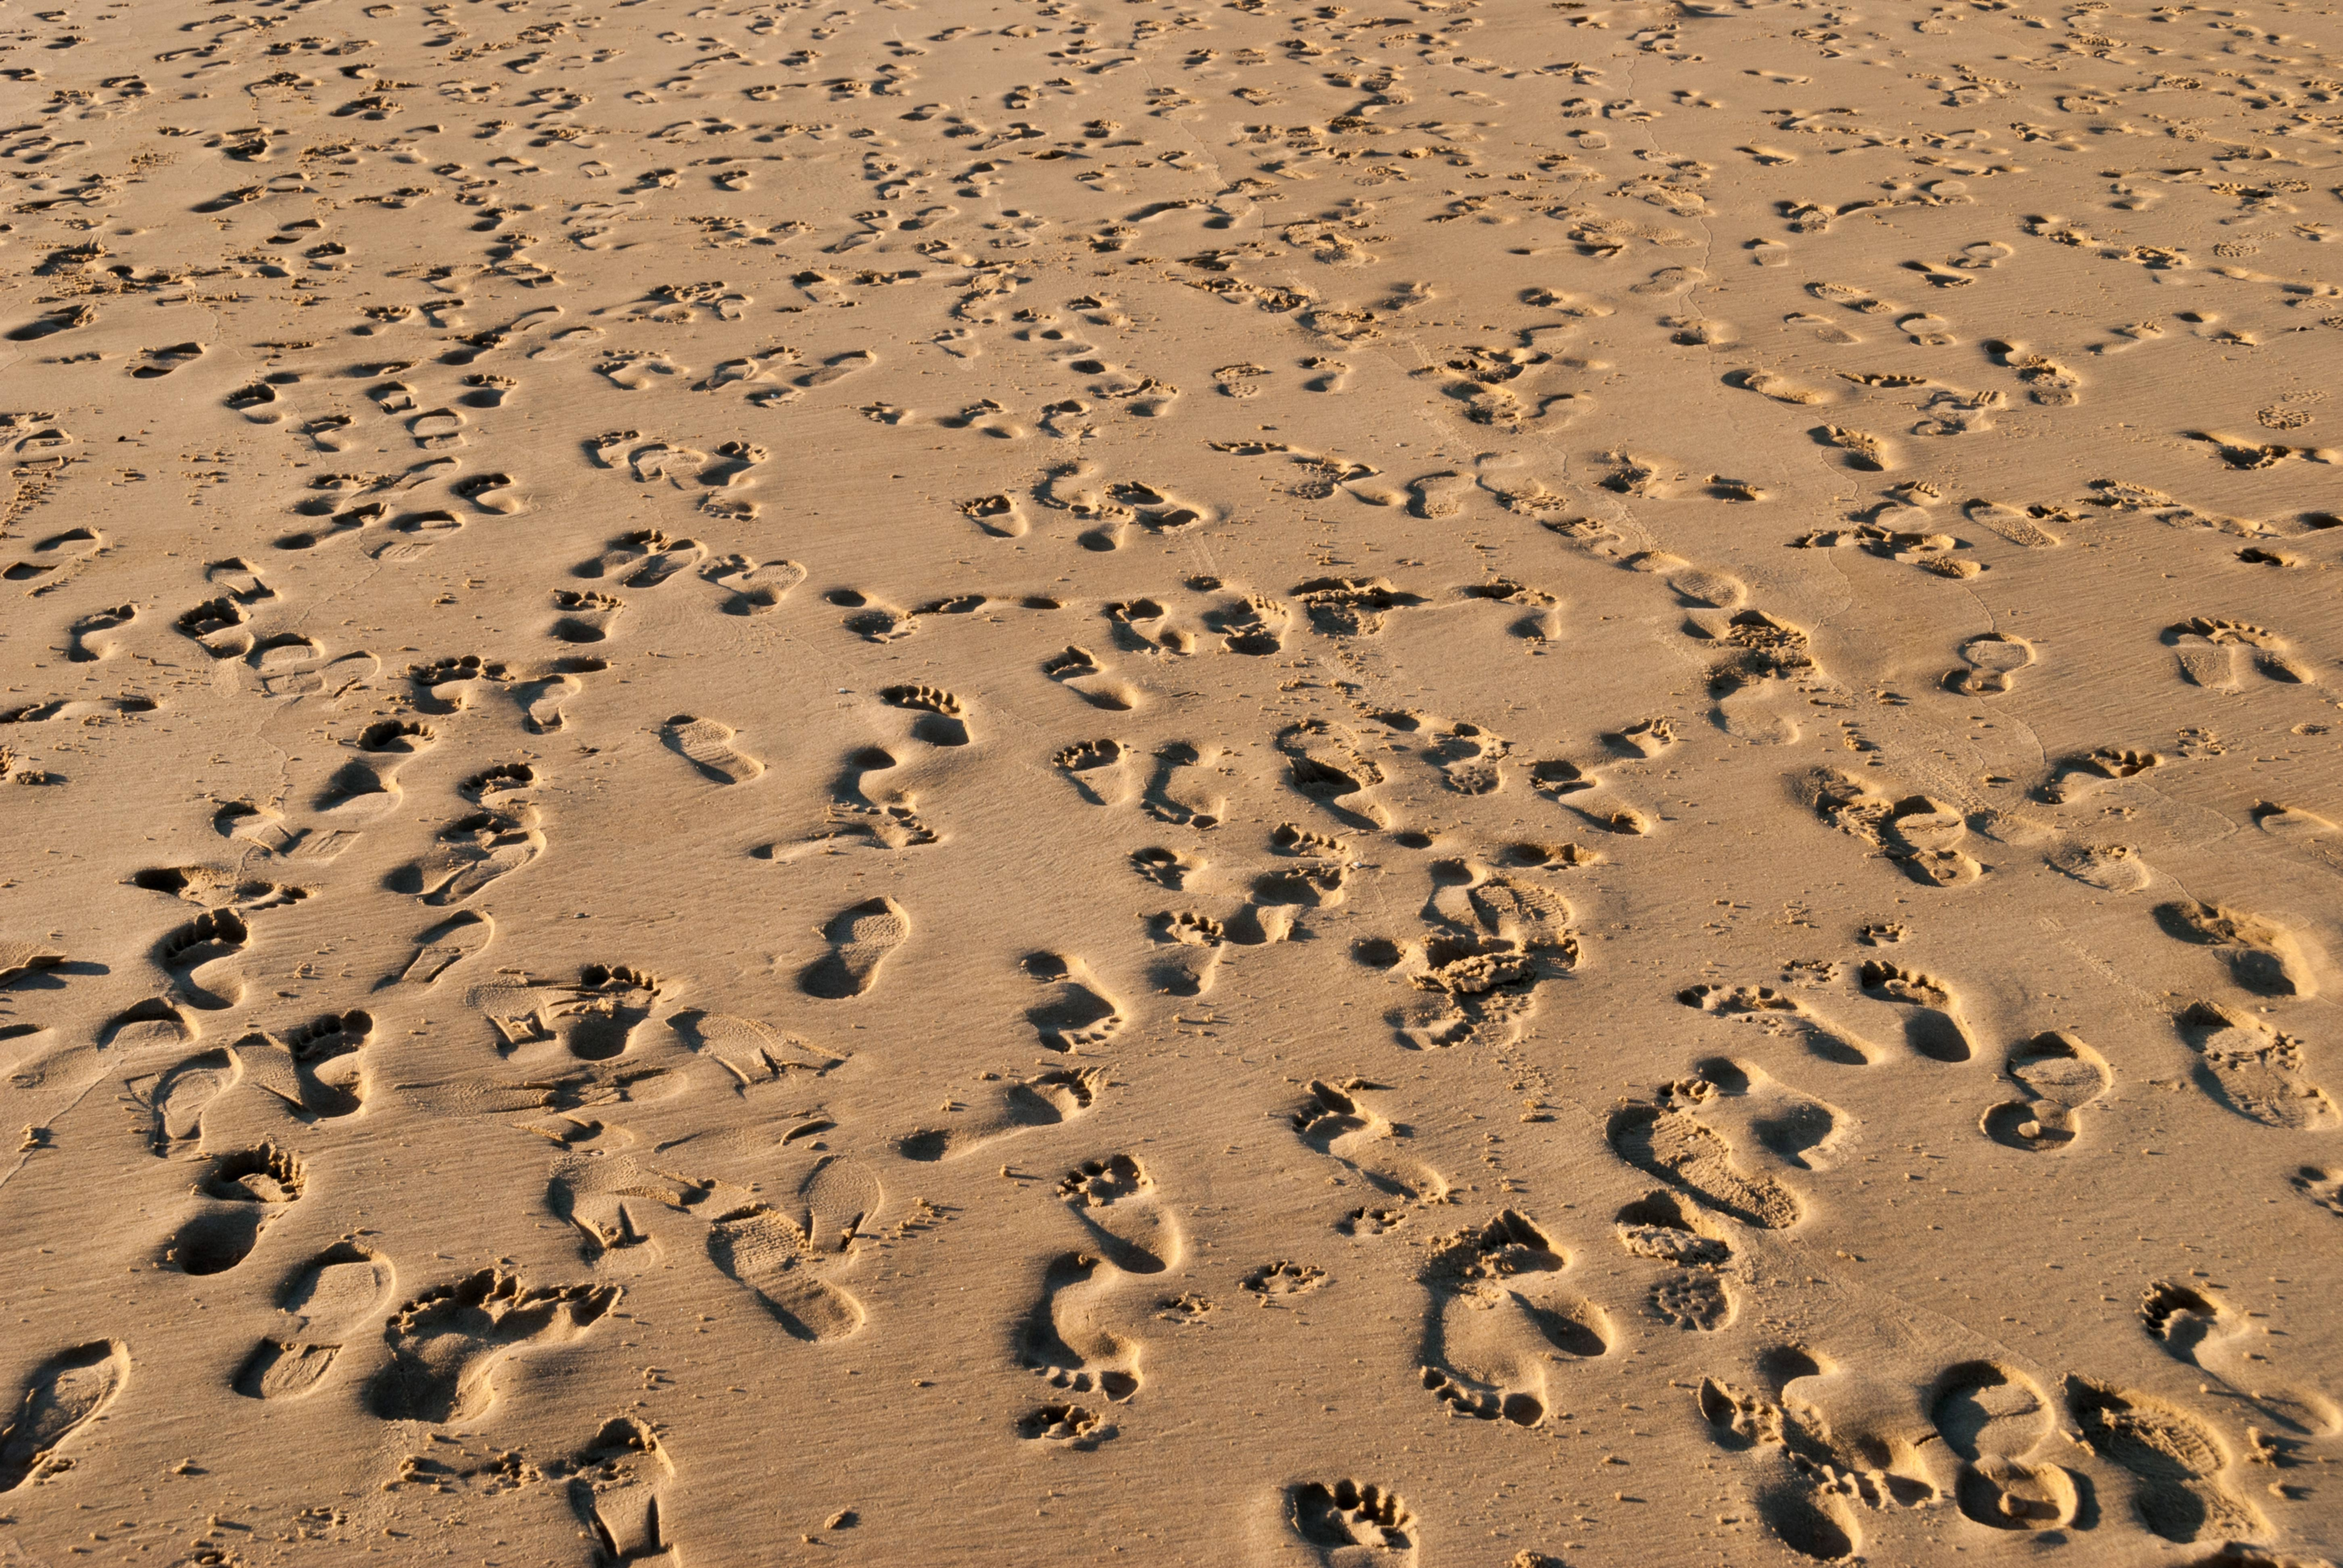 Footprints in the sand beach background texture